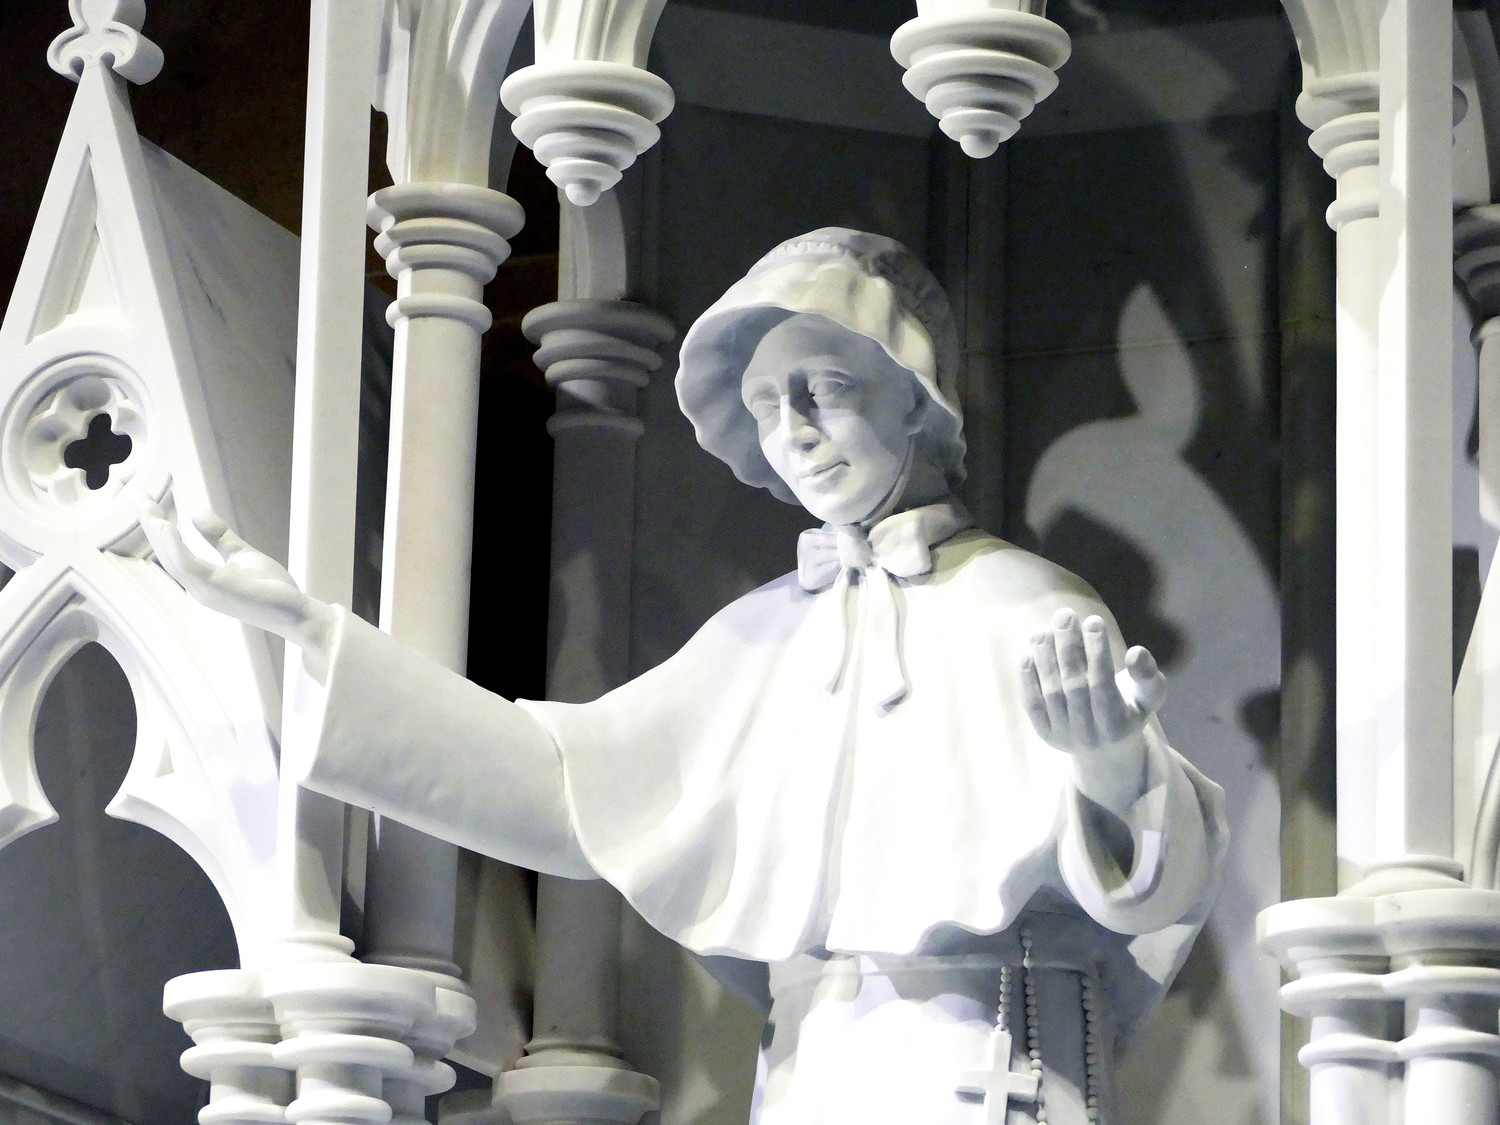 Mother Seton, a native New Yorker who founded the Sisters of Charity of New York 200 years ago and was later canonized as the first American-born saint, is depicted in the statue.